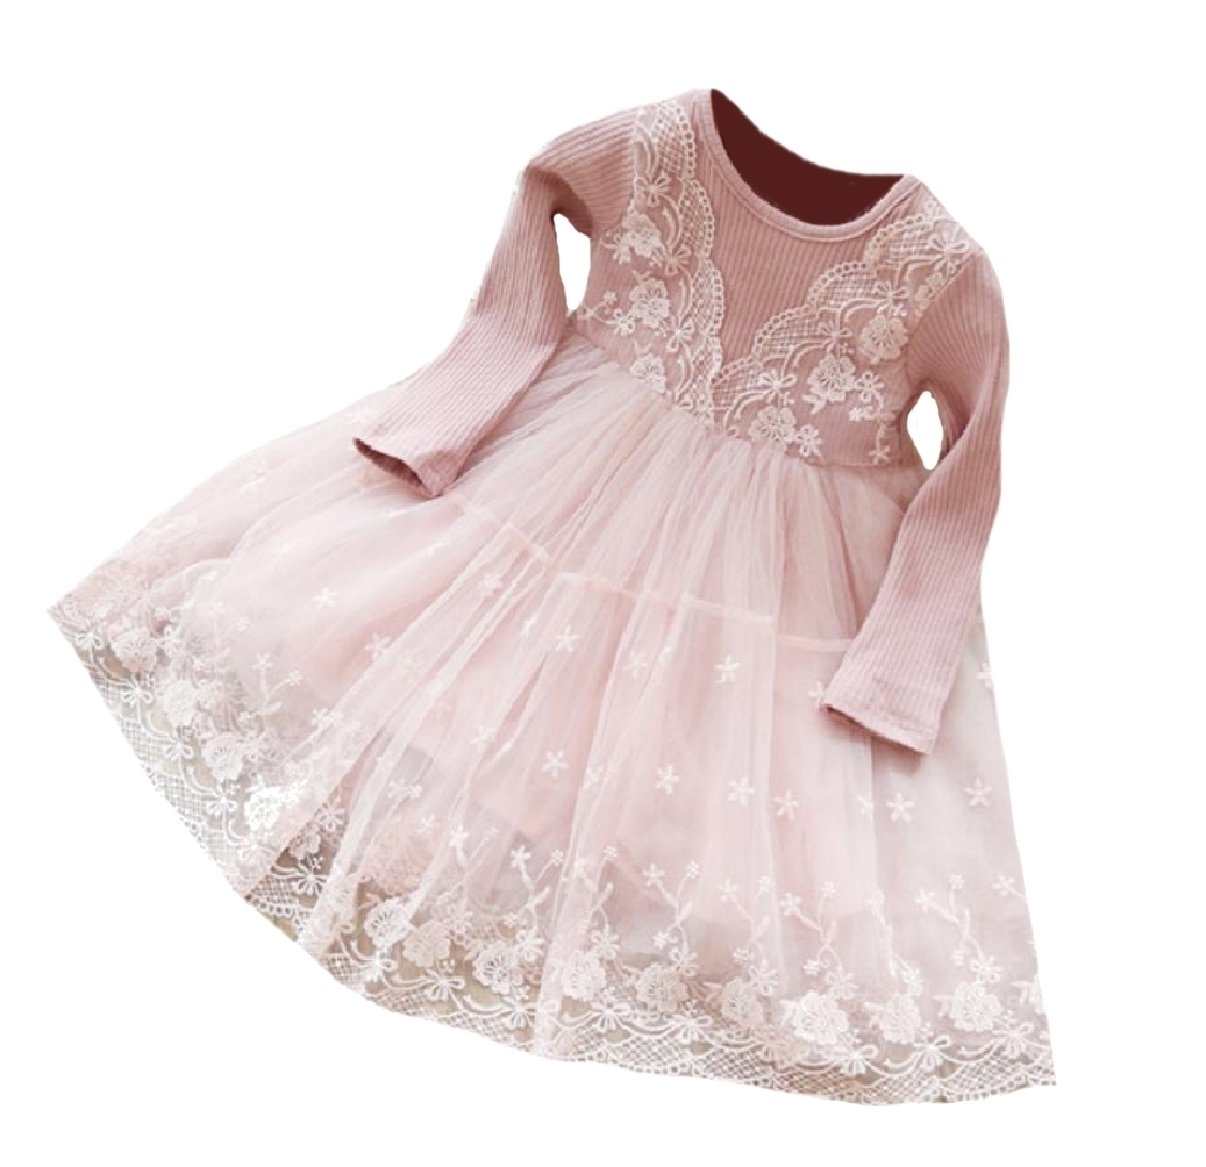 XQS Girls Lace Fine Cotton Stylish Ballgown Dress for Wedding Party Pink 100